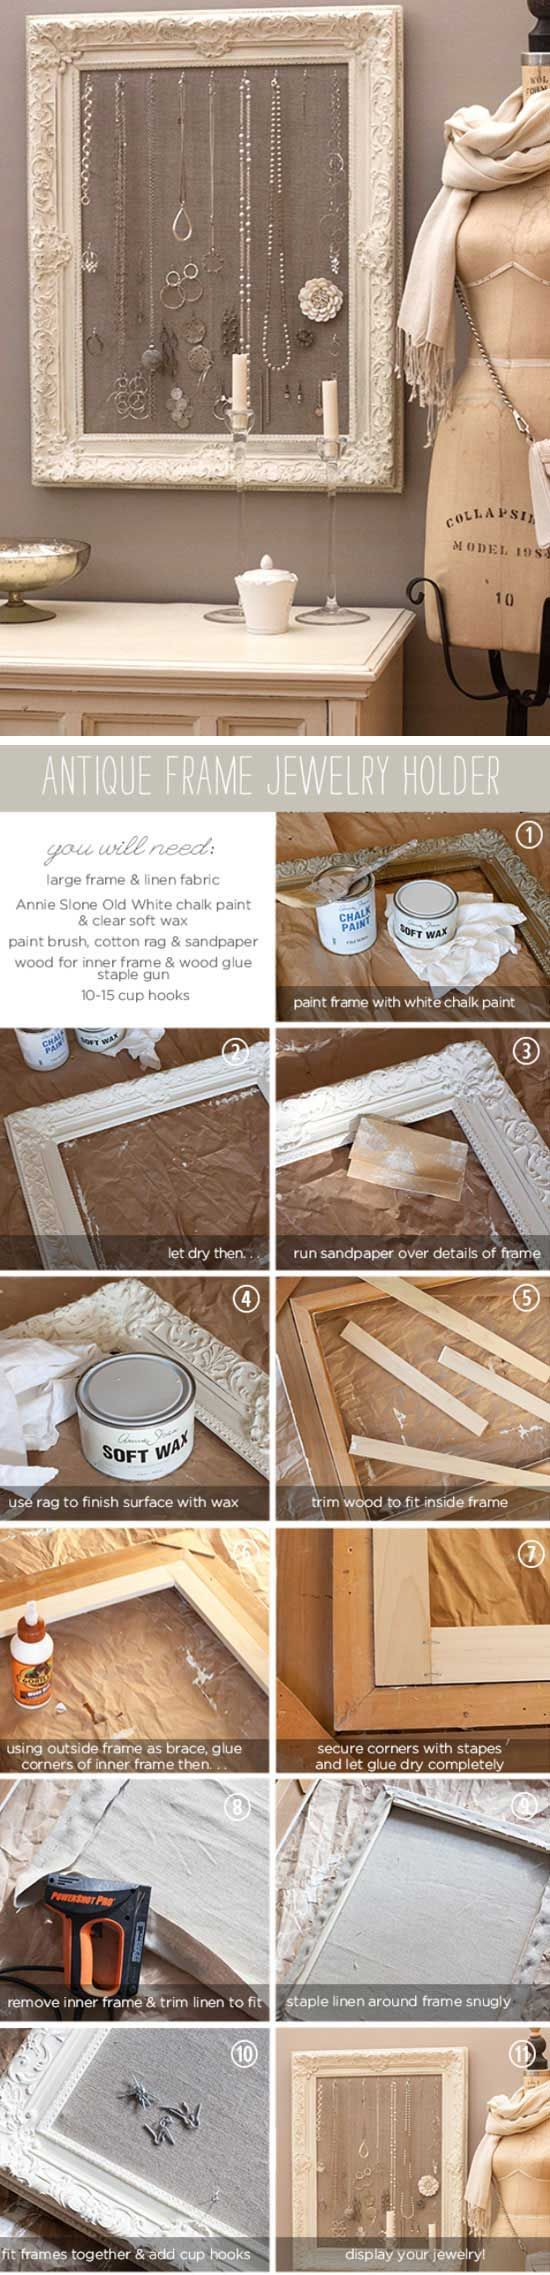 DIY Antique Frame Jewelry Holder DIY Home Decor on a Budget Dollar